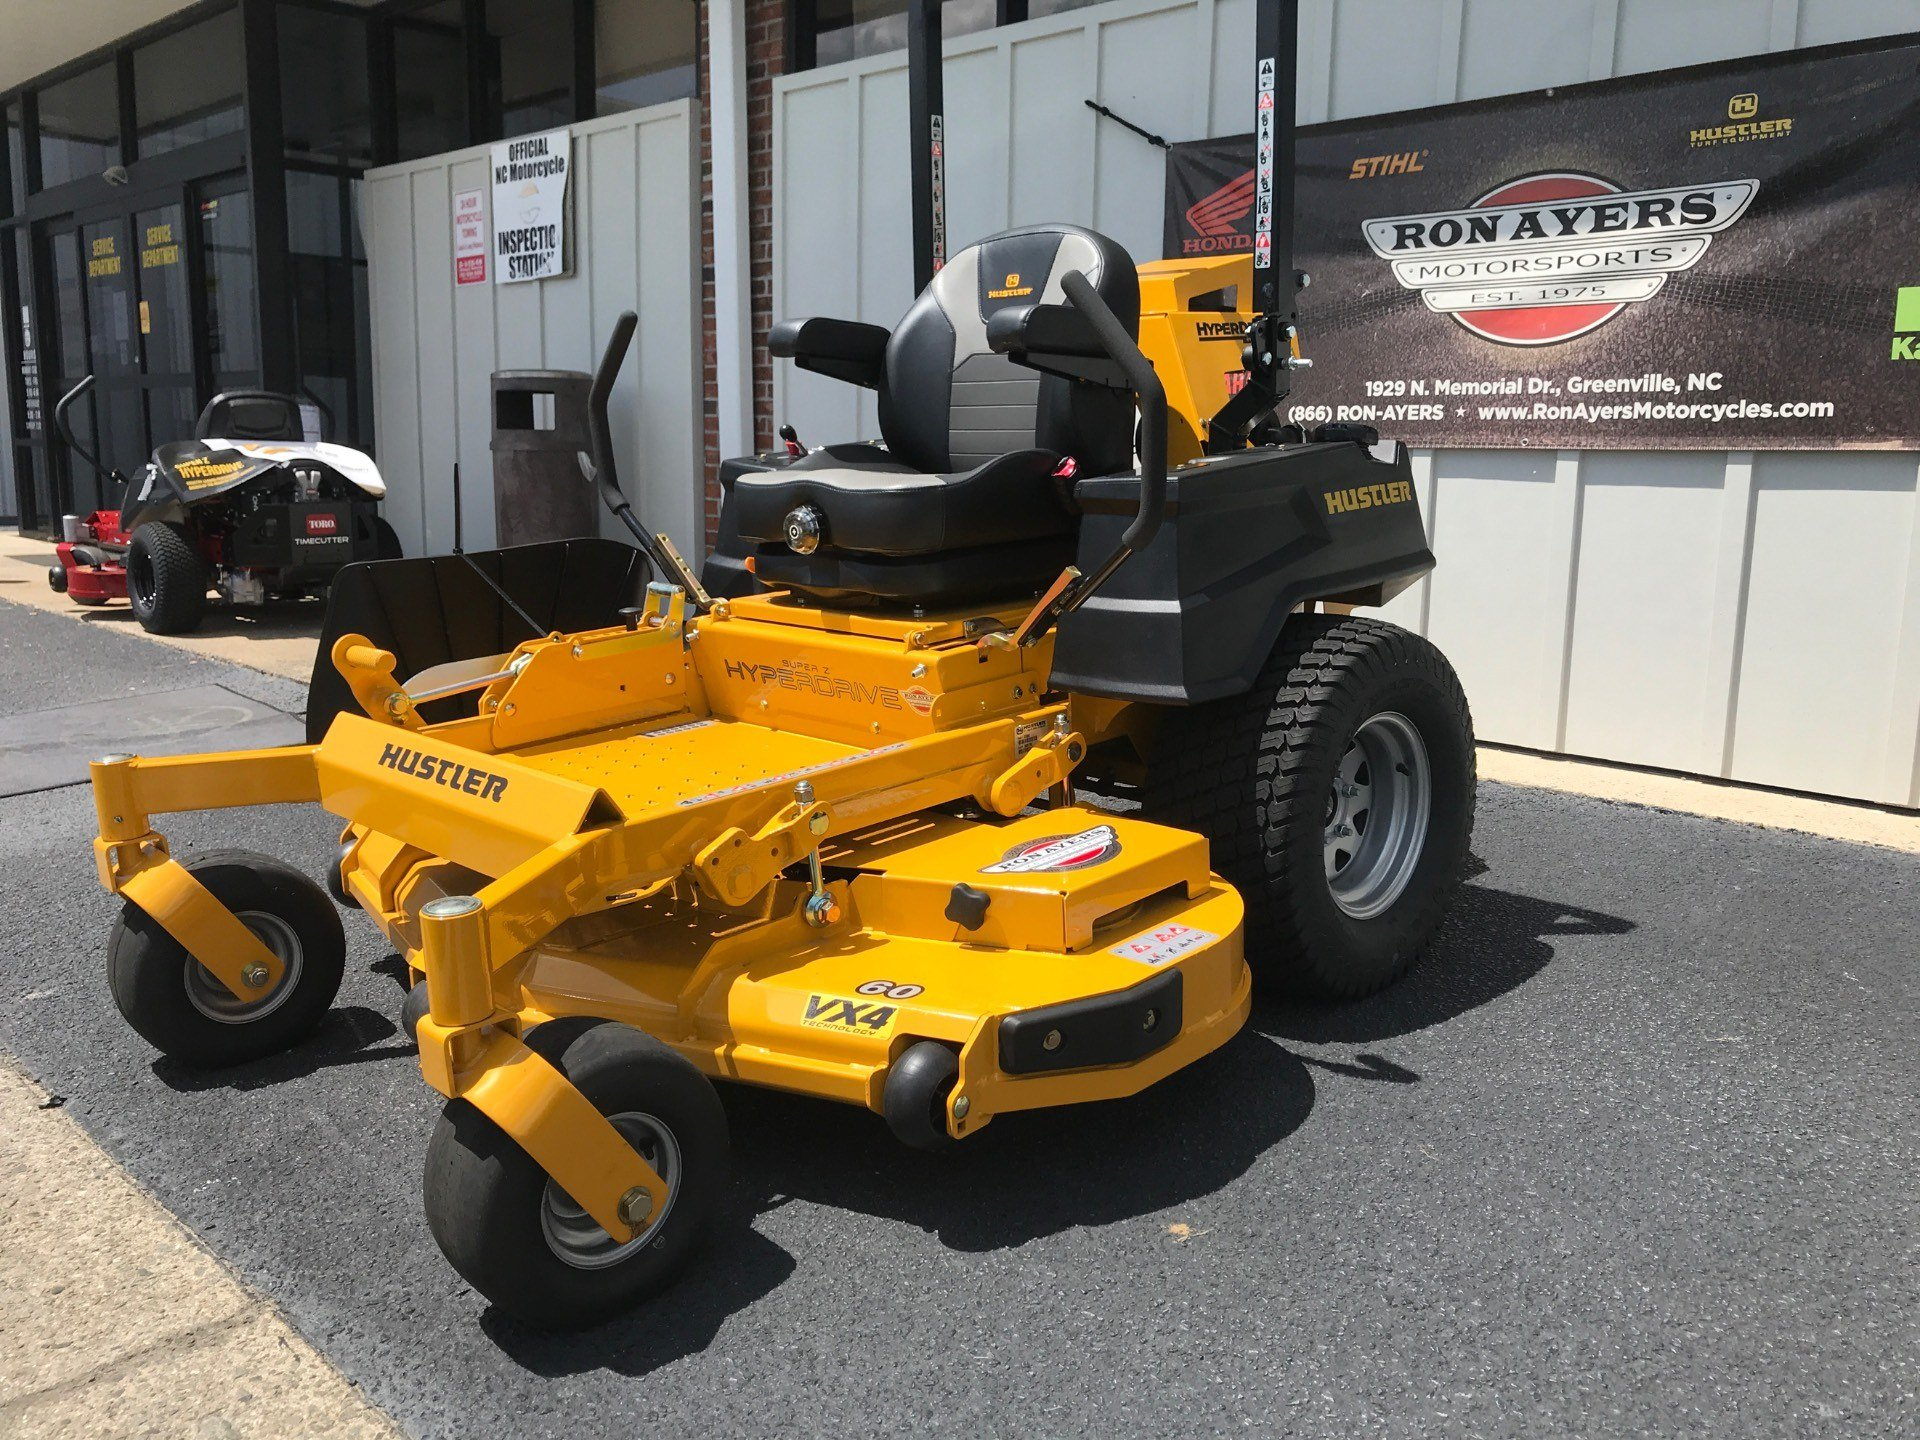 2020 Hustler Turf Equipment Super Z HyperDrive 60 in. Vanguard Big Block EFI 37 hp in Greenville, North Carolina - Photo 2